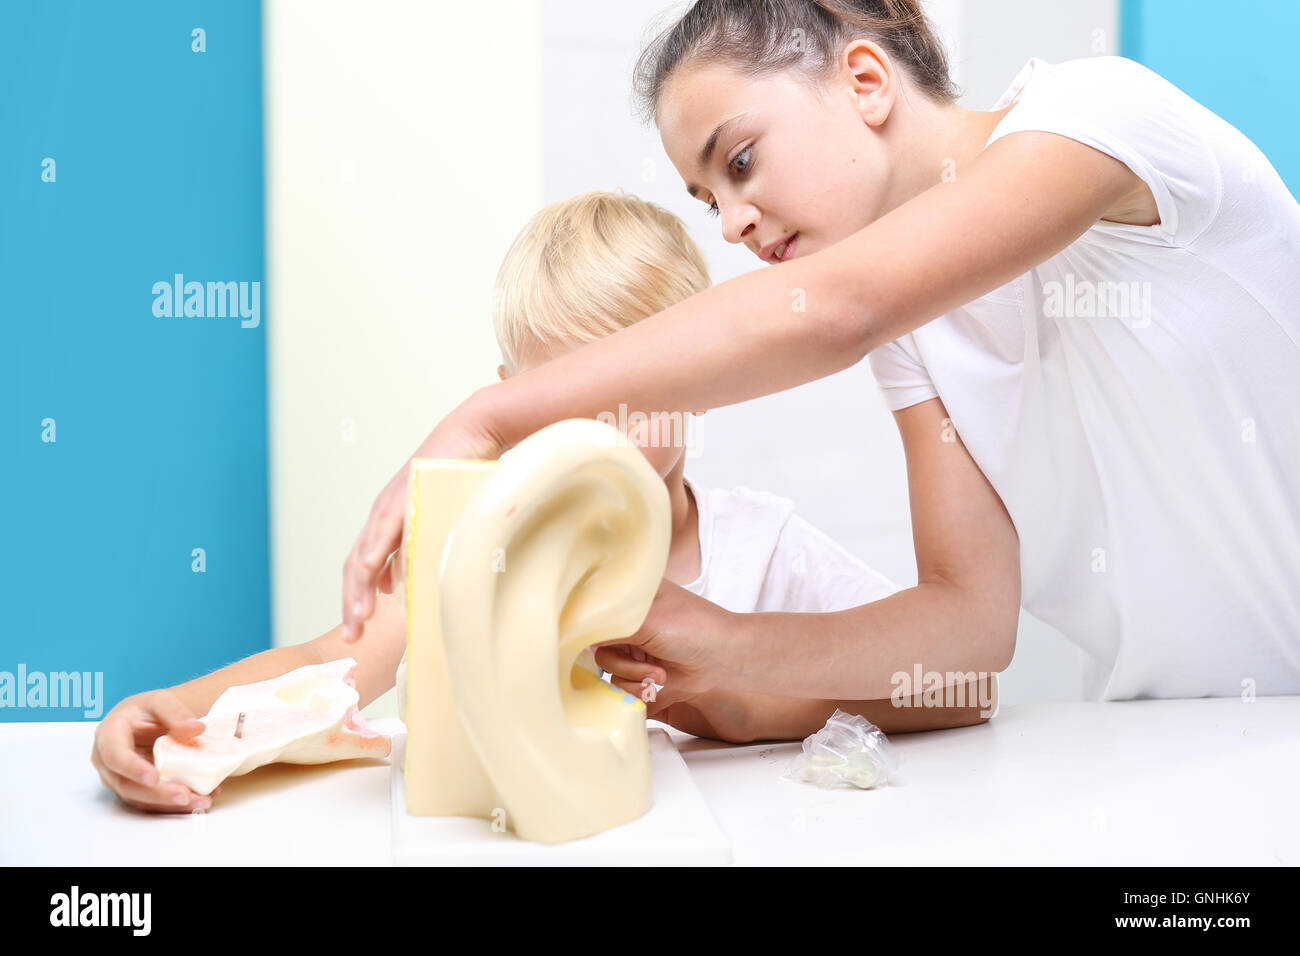 Help Scientific Model Of The Human Ear Anatomy Of A Child On